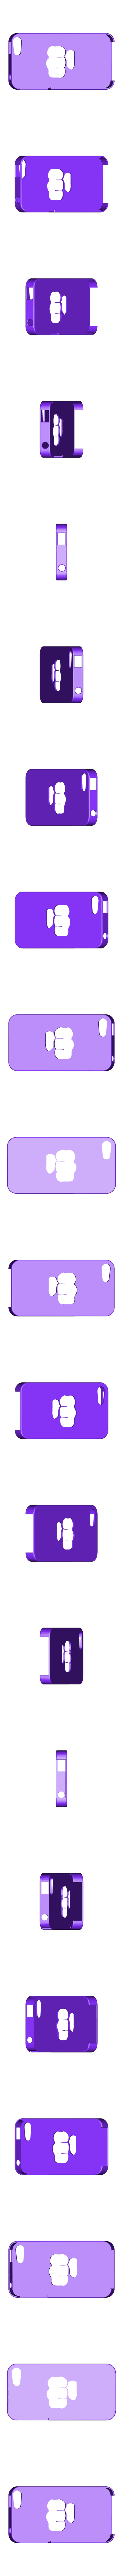 iphone_4s_pewdiepie_case__3_.stl Download free OBJ file Pewdiepie Bro fist iPhone4/4s case • 3D print template, Mathi_